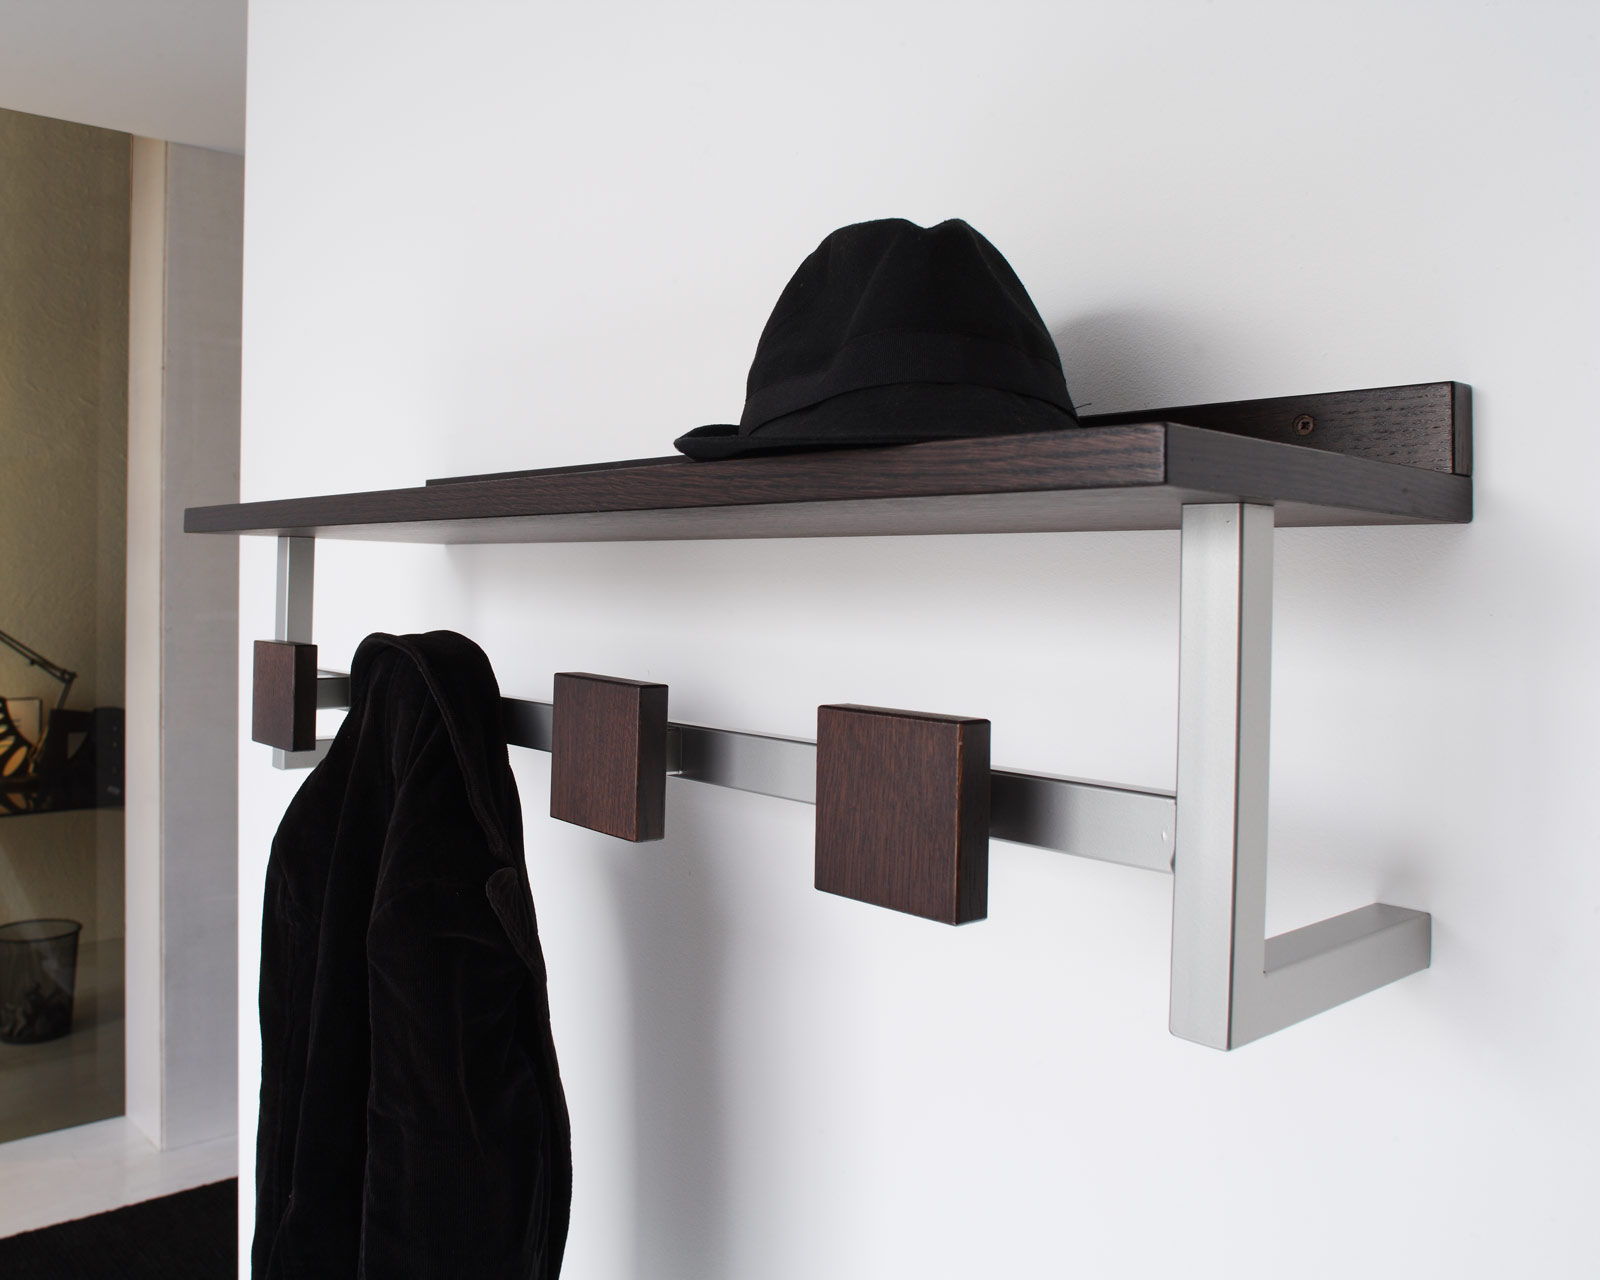 DIY Simple Cubicle Coat Hook for Your Cubicle Accessories: Cubicle Coat Hook | Cubicle Coat Rack | Cubicle Shelves Hanging